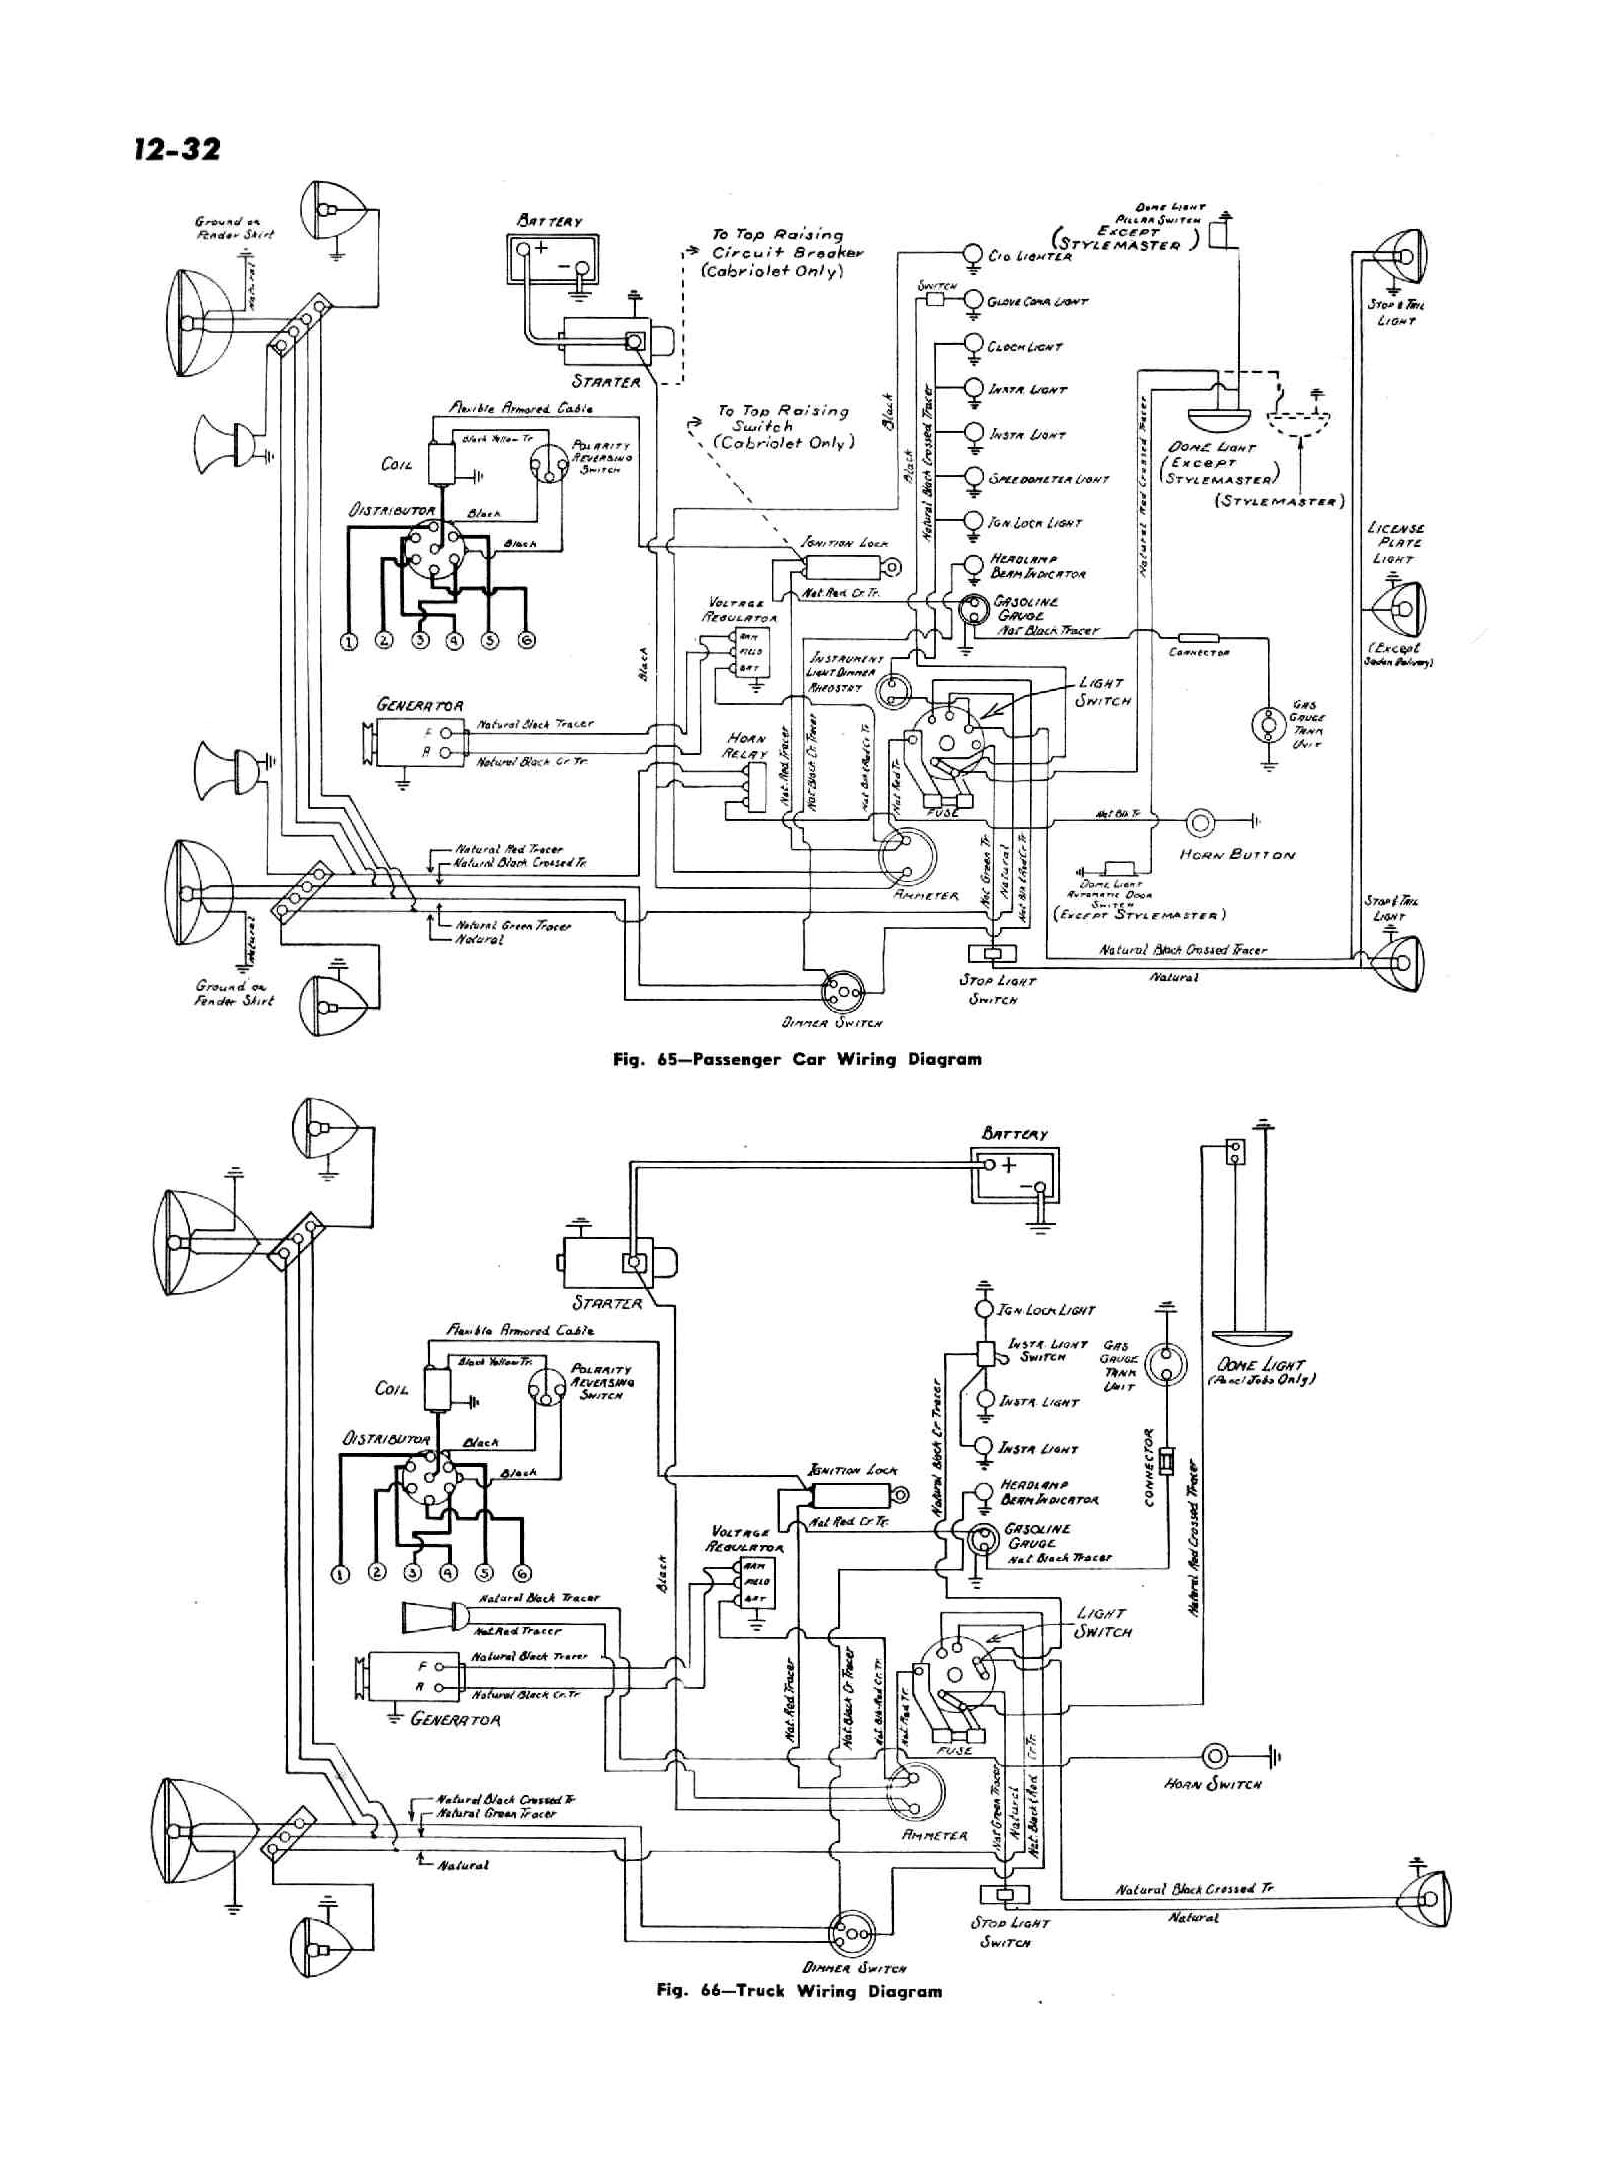 1960 Chevrolet Wiring Diagram Archive Of Automotive Chevy Diagrams Rh Oldcarmanualproject Com Apache Impala